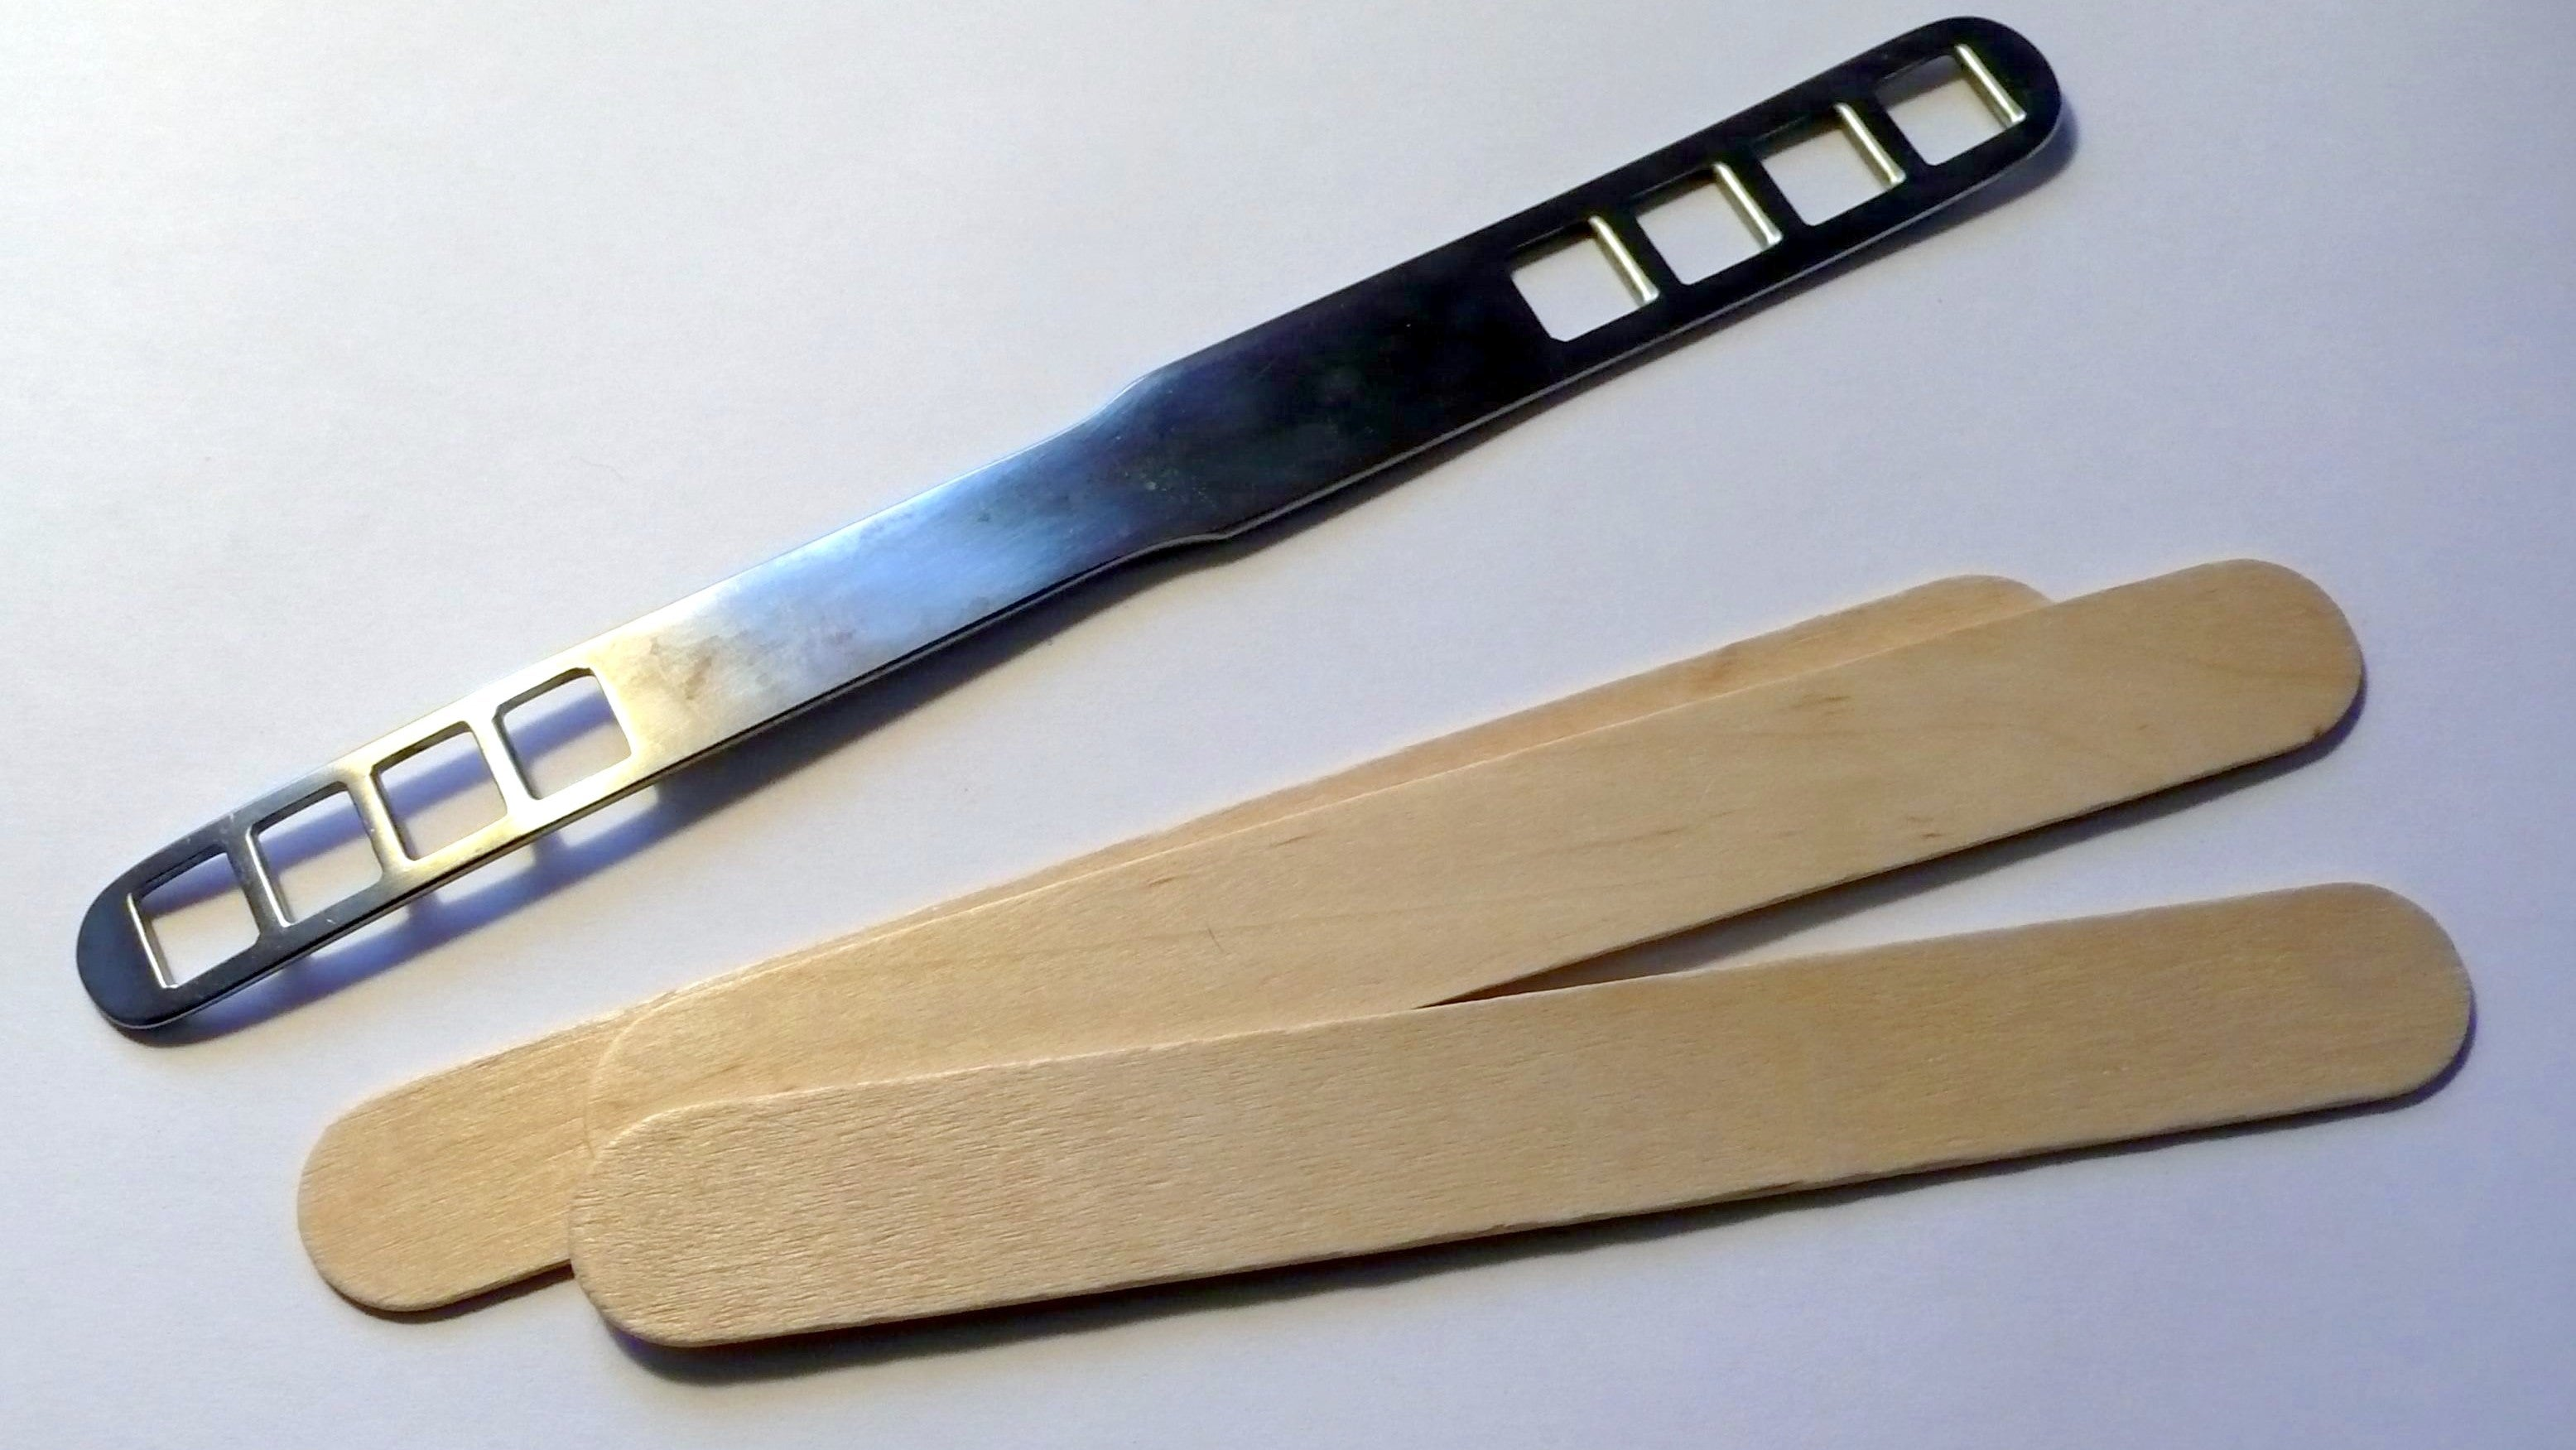 U.S. Woman Charged With Felony After Daughter Is Filmed Licking Tongue Depressor In Medical Centre